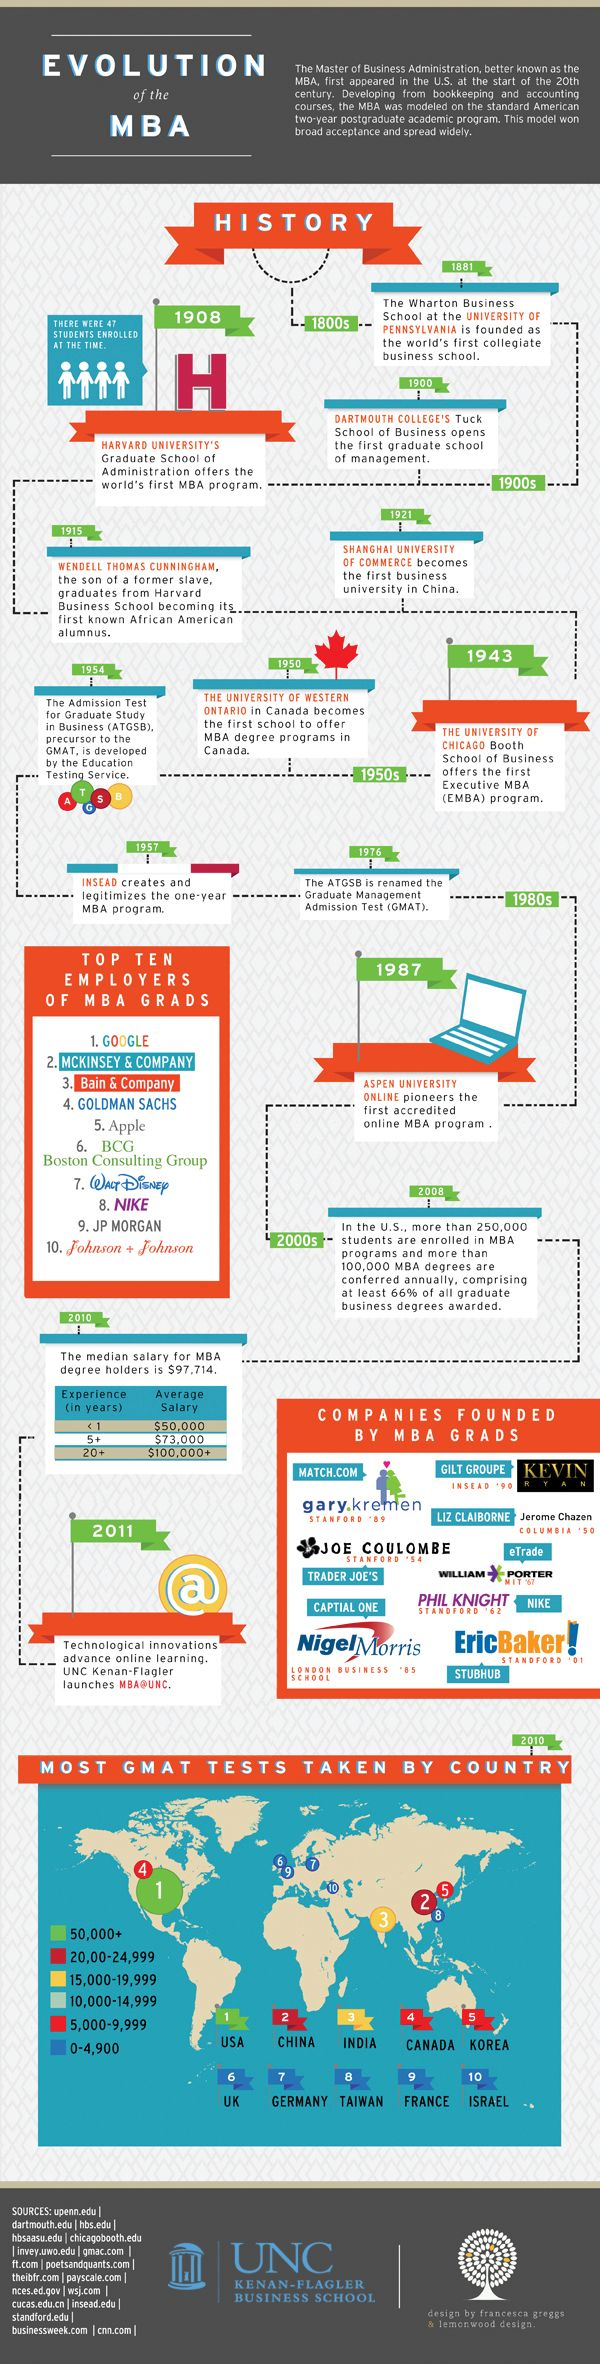 The Evolution Of The MBA (INFOGRAPHIC)